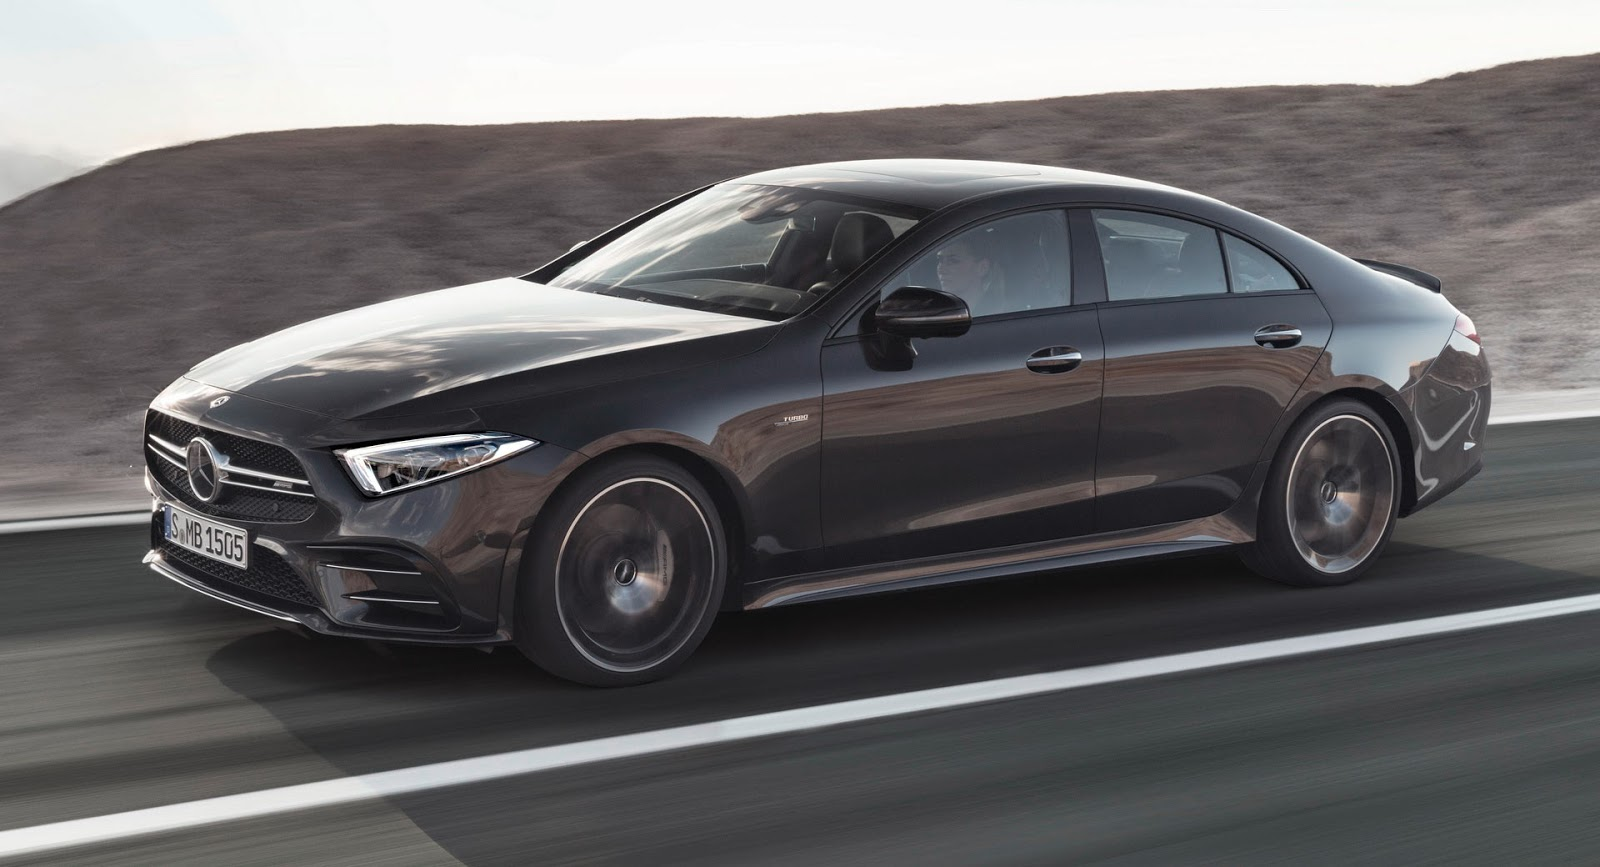 https://s1.cdn.autoevolution.com/images/news/mercedes-amg-cls-53-officially-revealed-122763_1.jpg